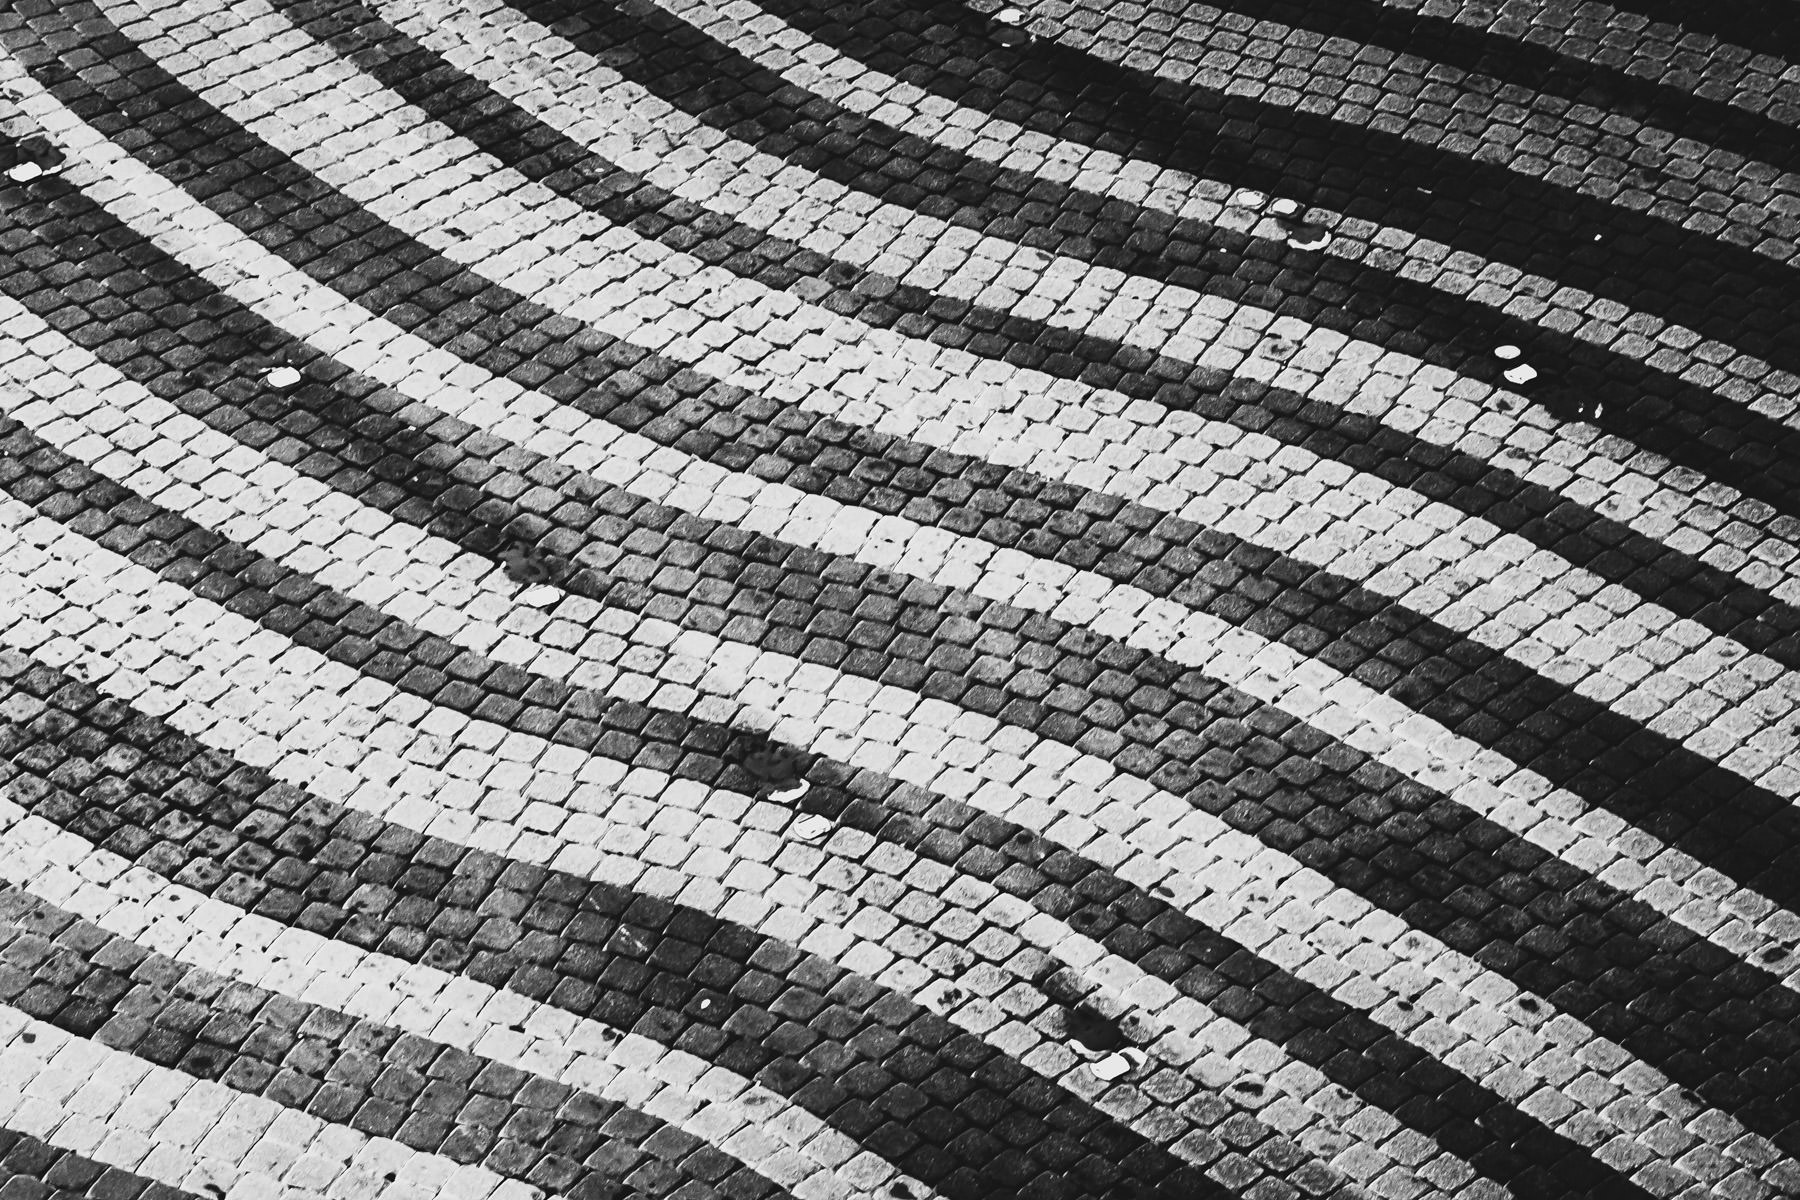 A curious pattern of bricks making up a roadway at The Venetian, Las Vegas.